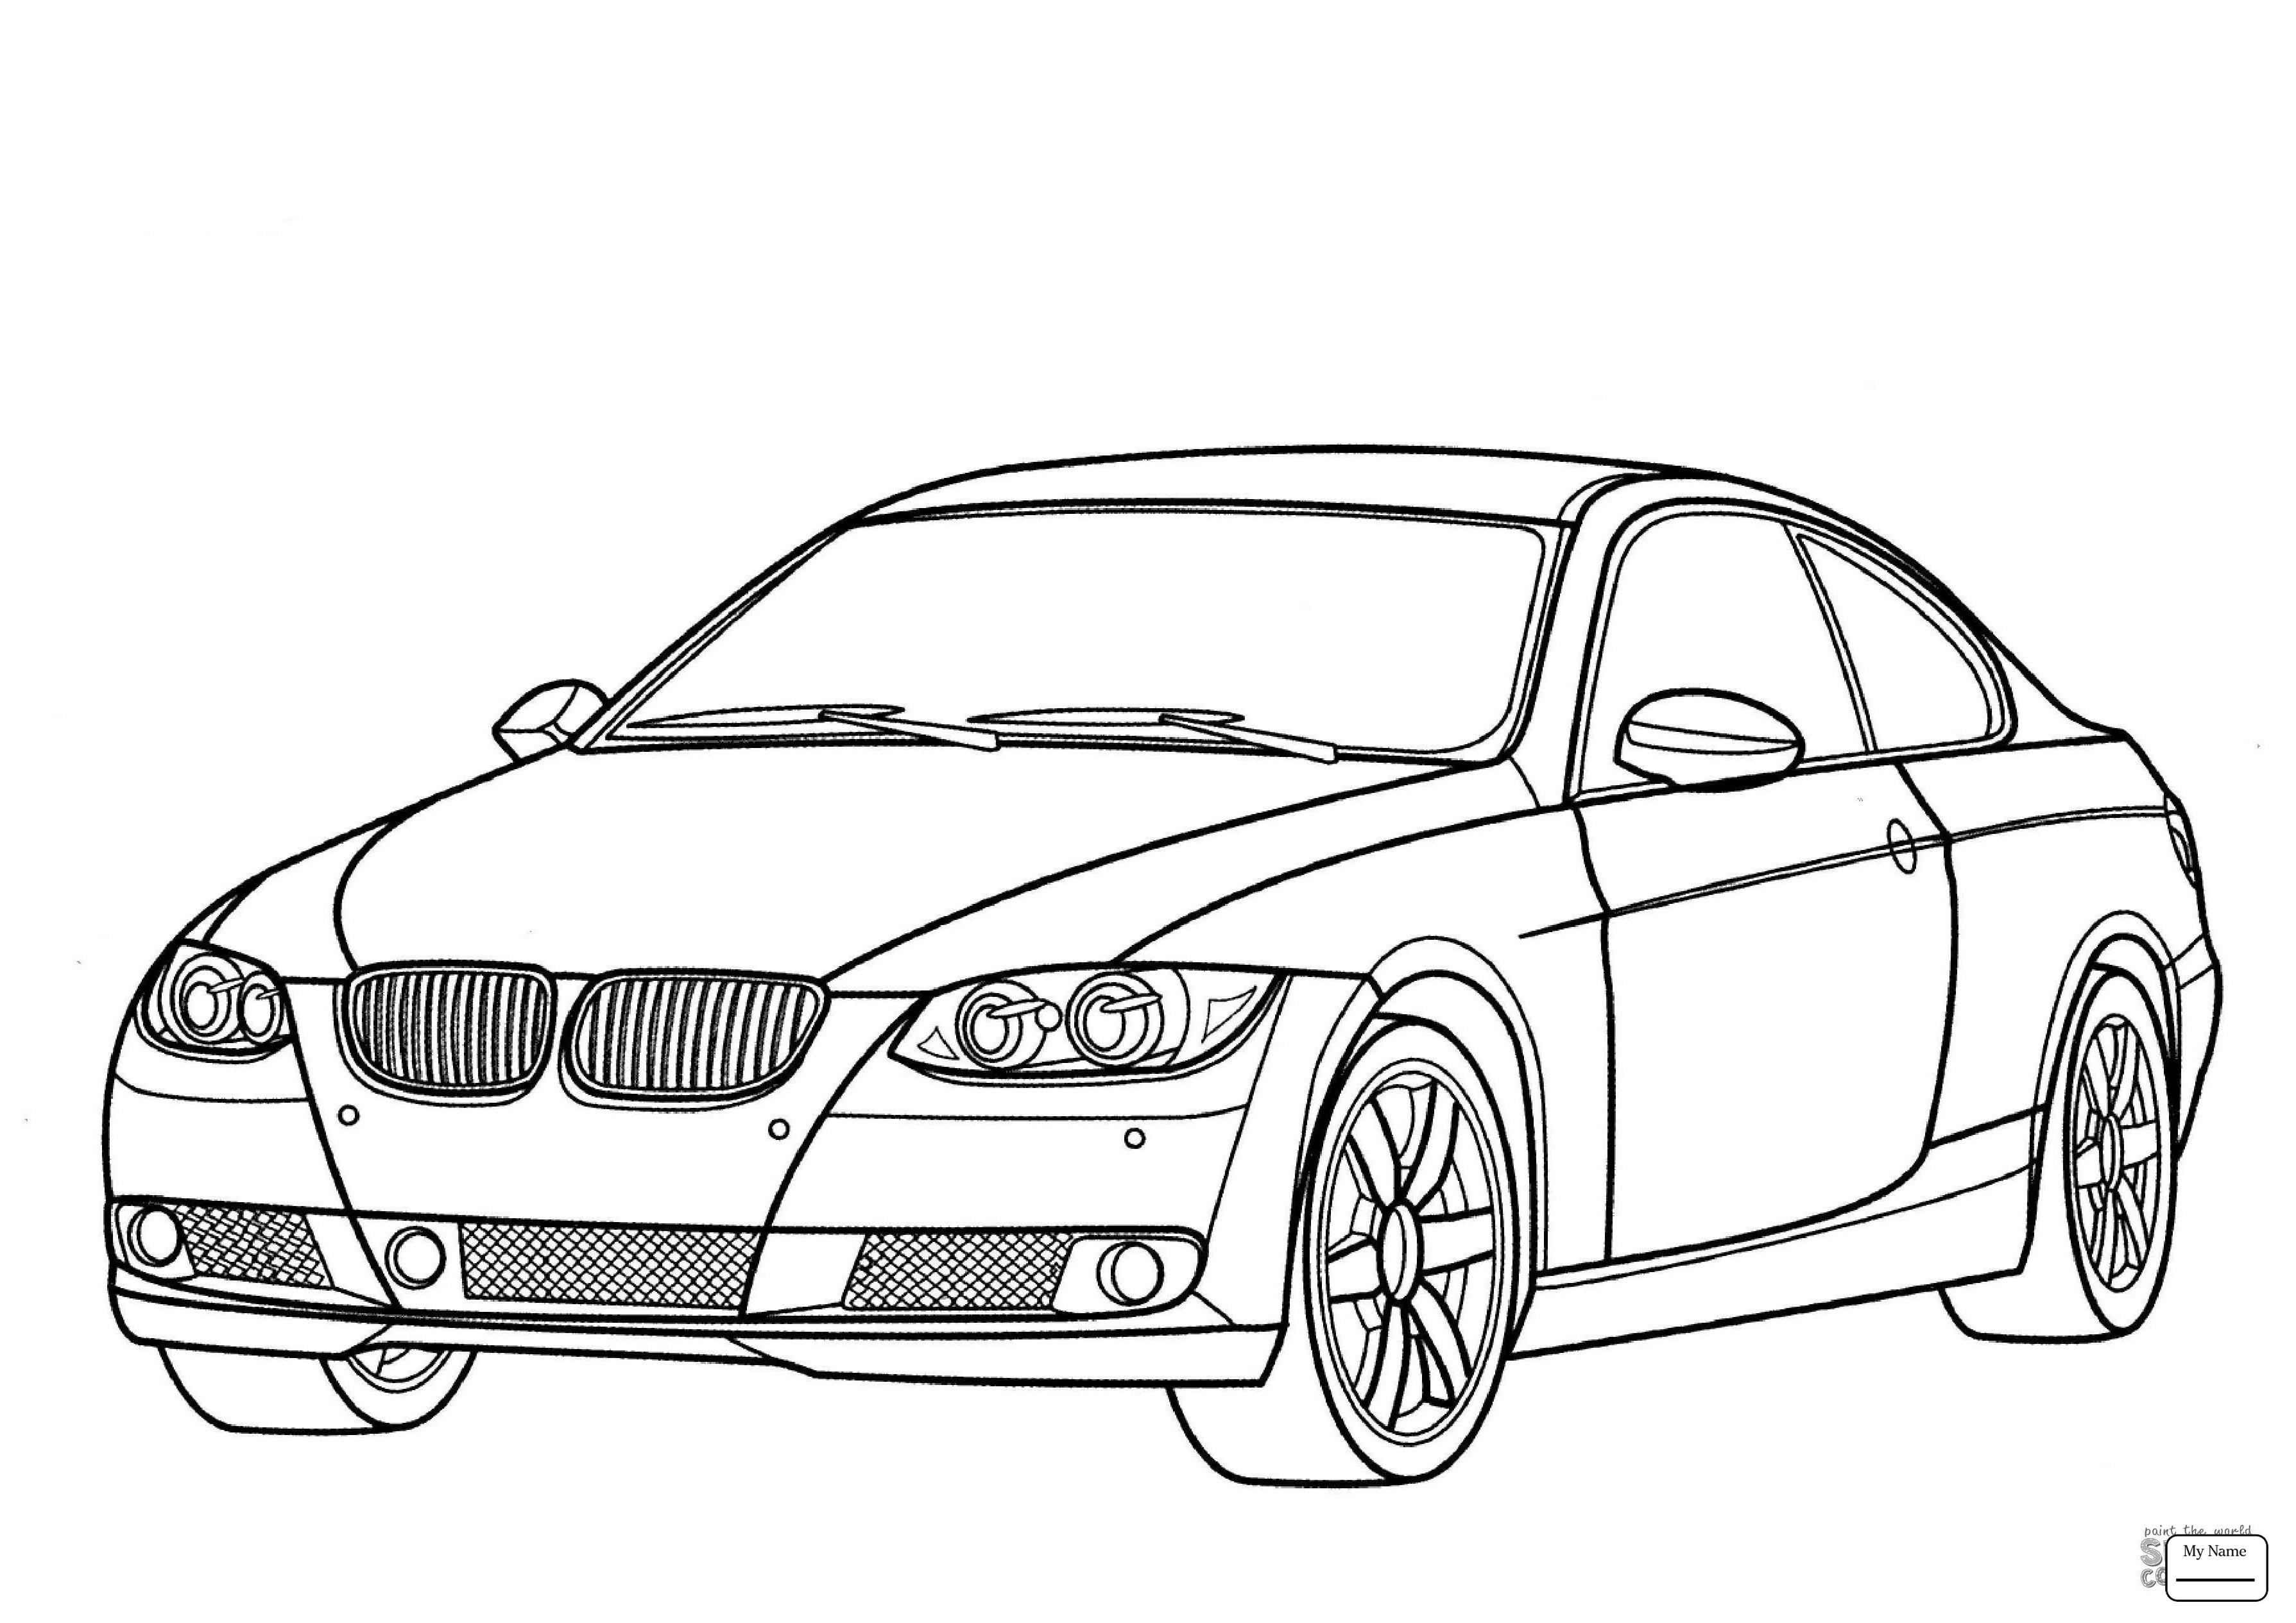 2015 Bmw I8 Coloring Pages Download Cars Coloring Pages Car Colors Race Car Coloring Pages